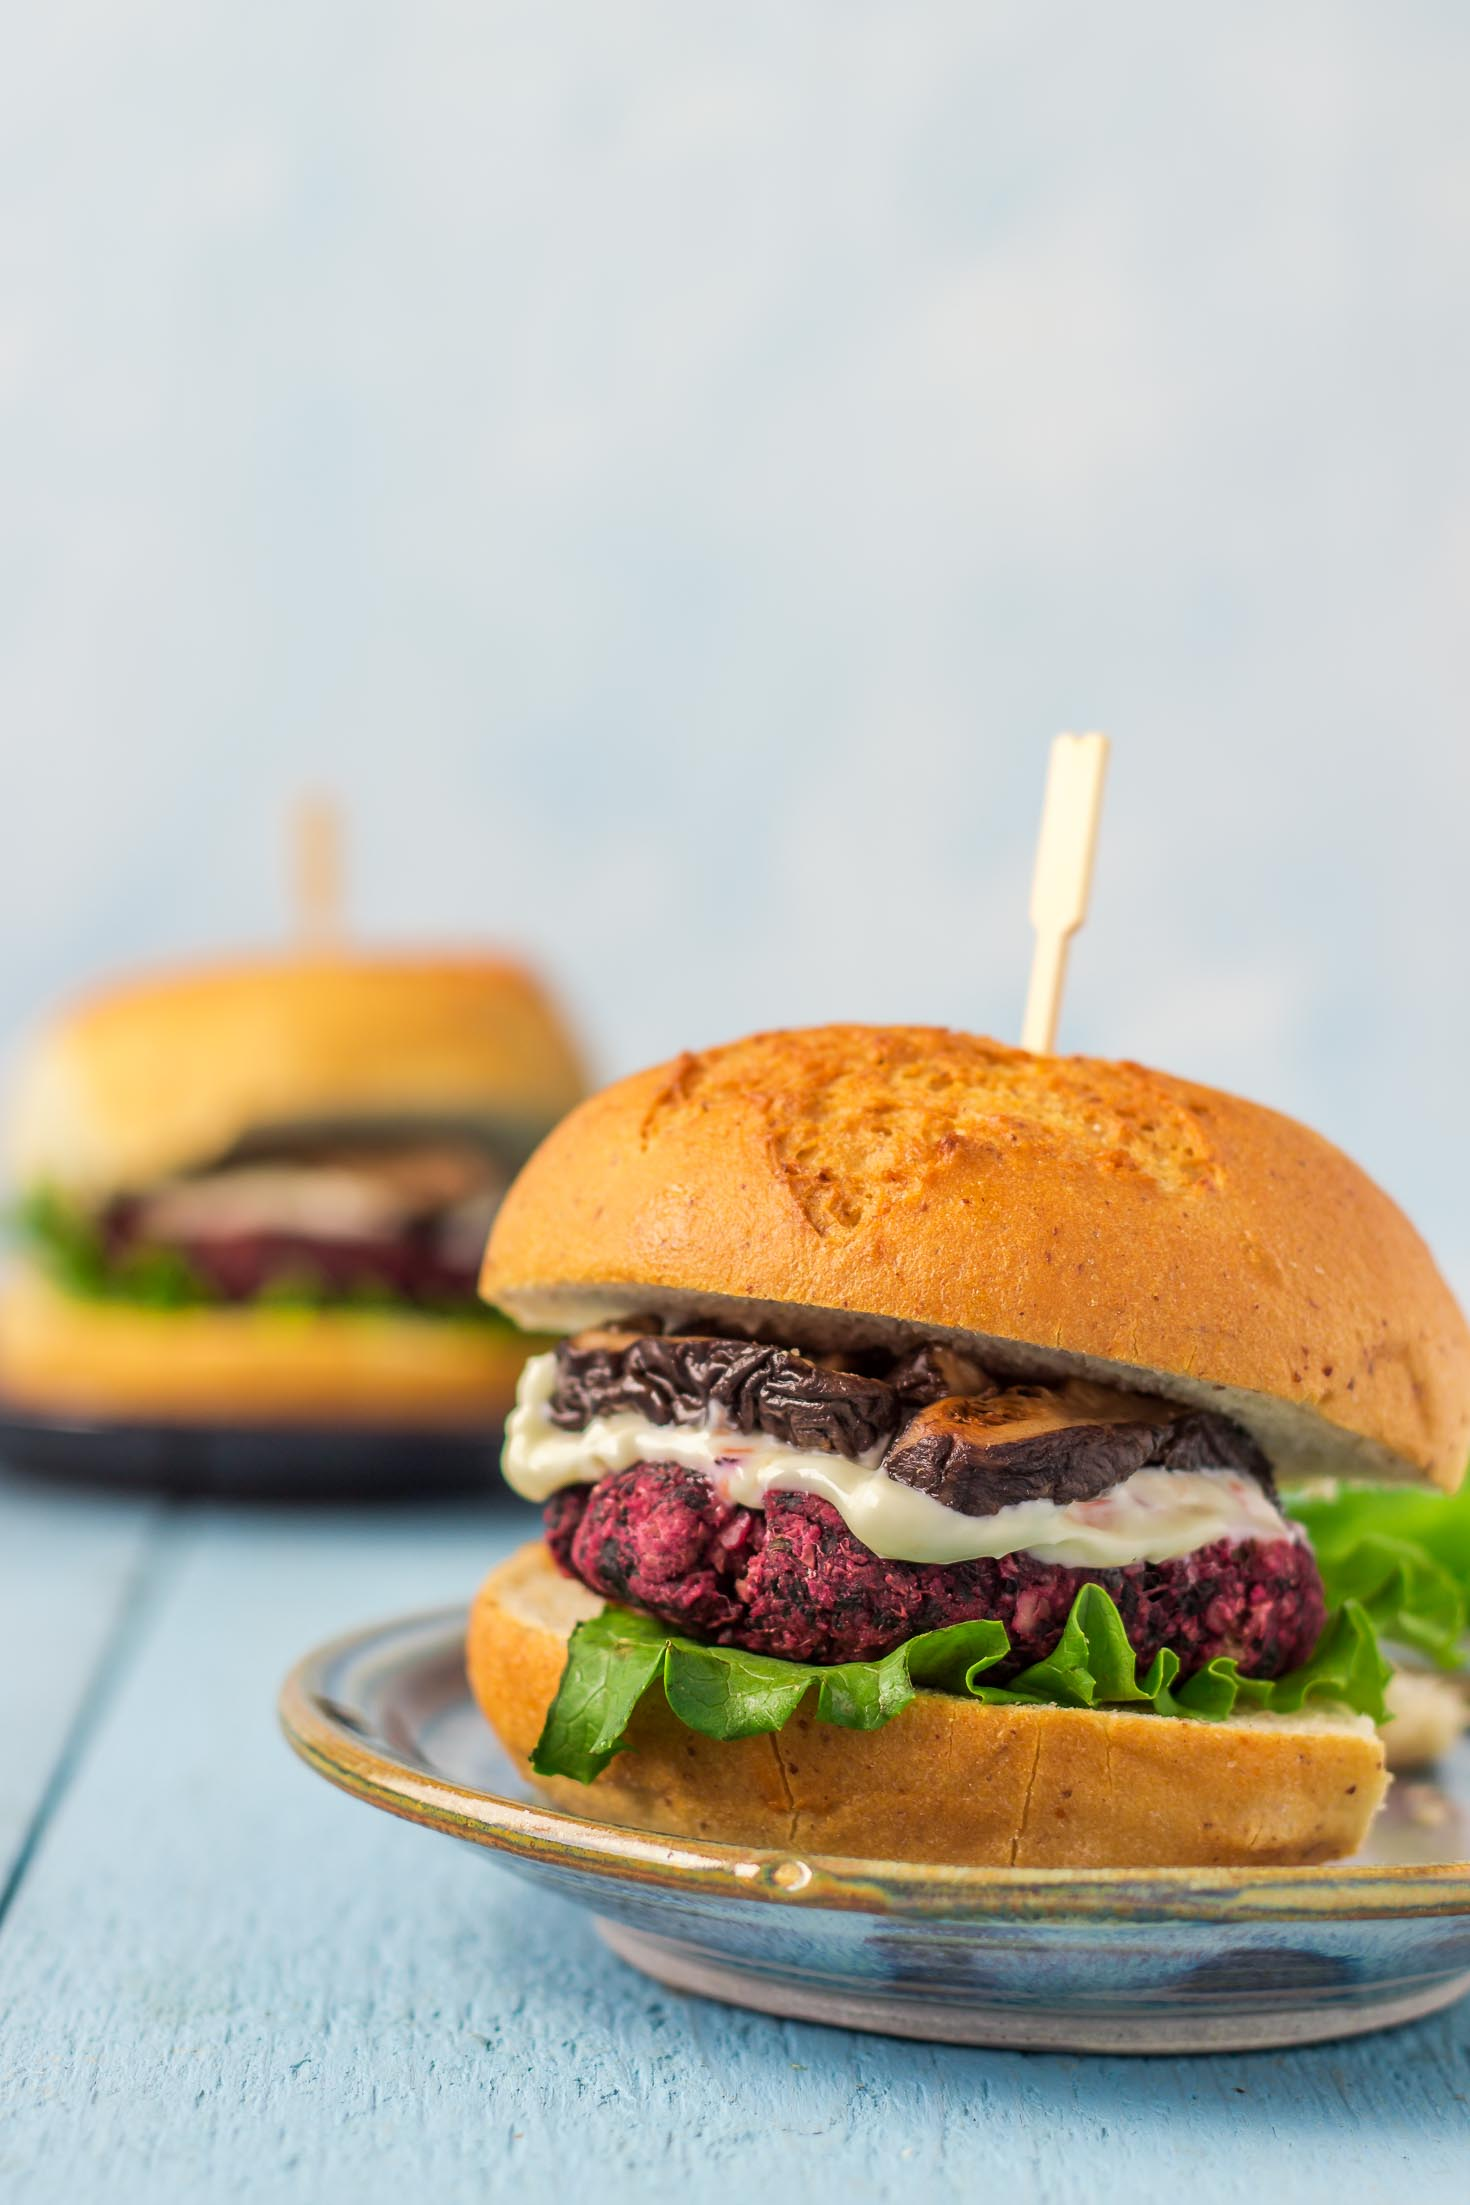 Beet Greens Lentil Burgers-assembled with green leaf lettuce, mayonnaise, soy sauce braised shiitake mushrooms between gluten-free buns